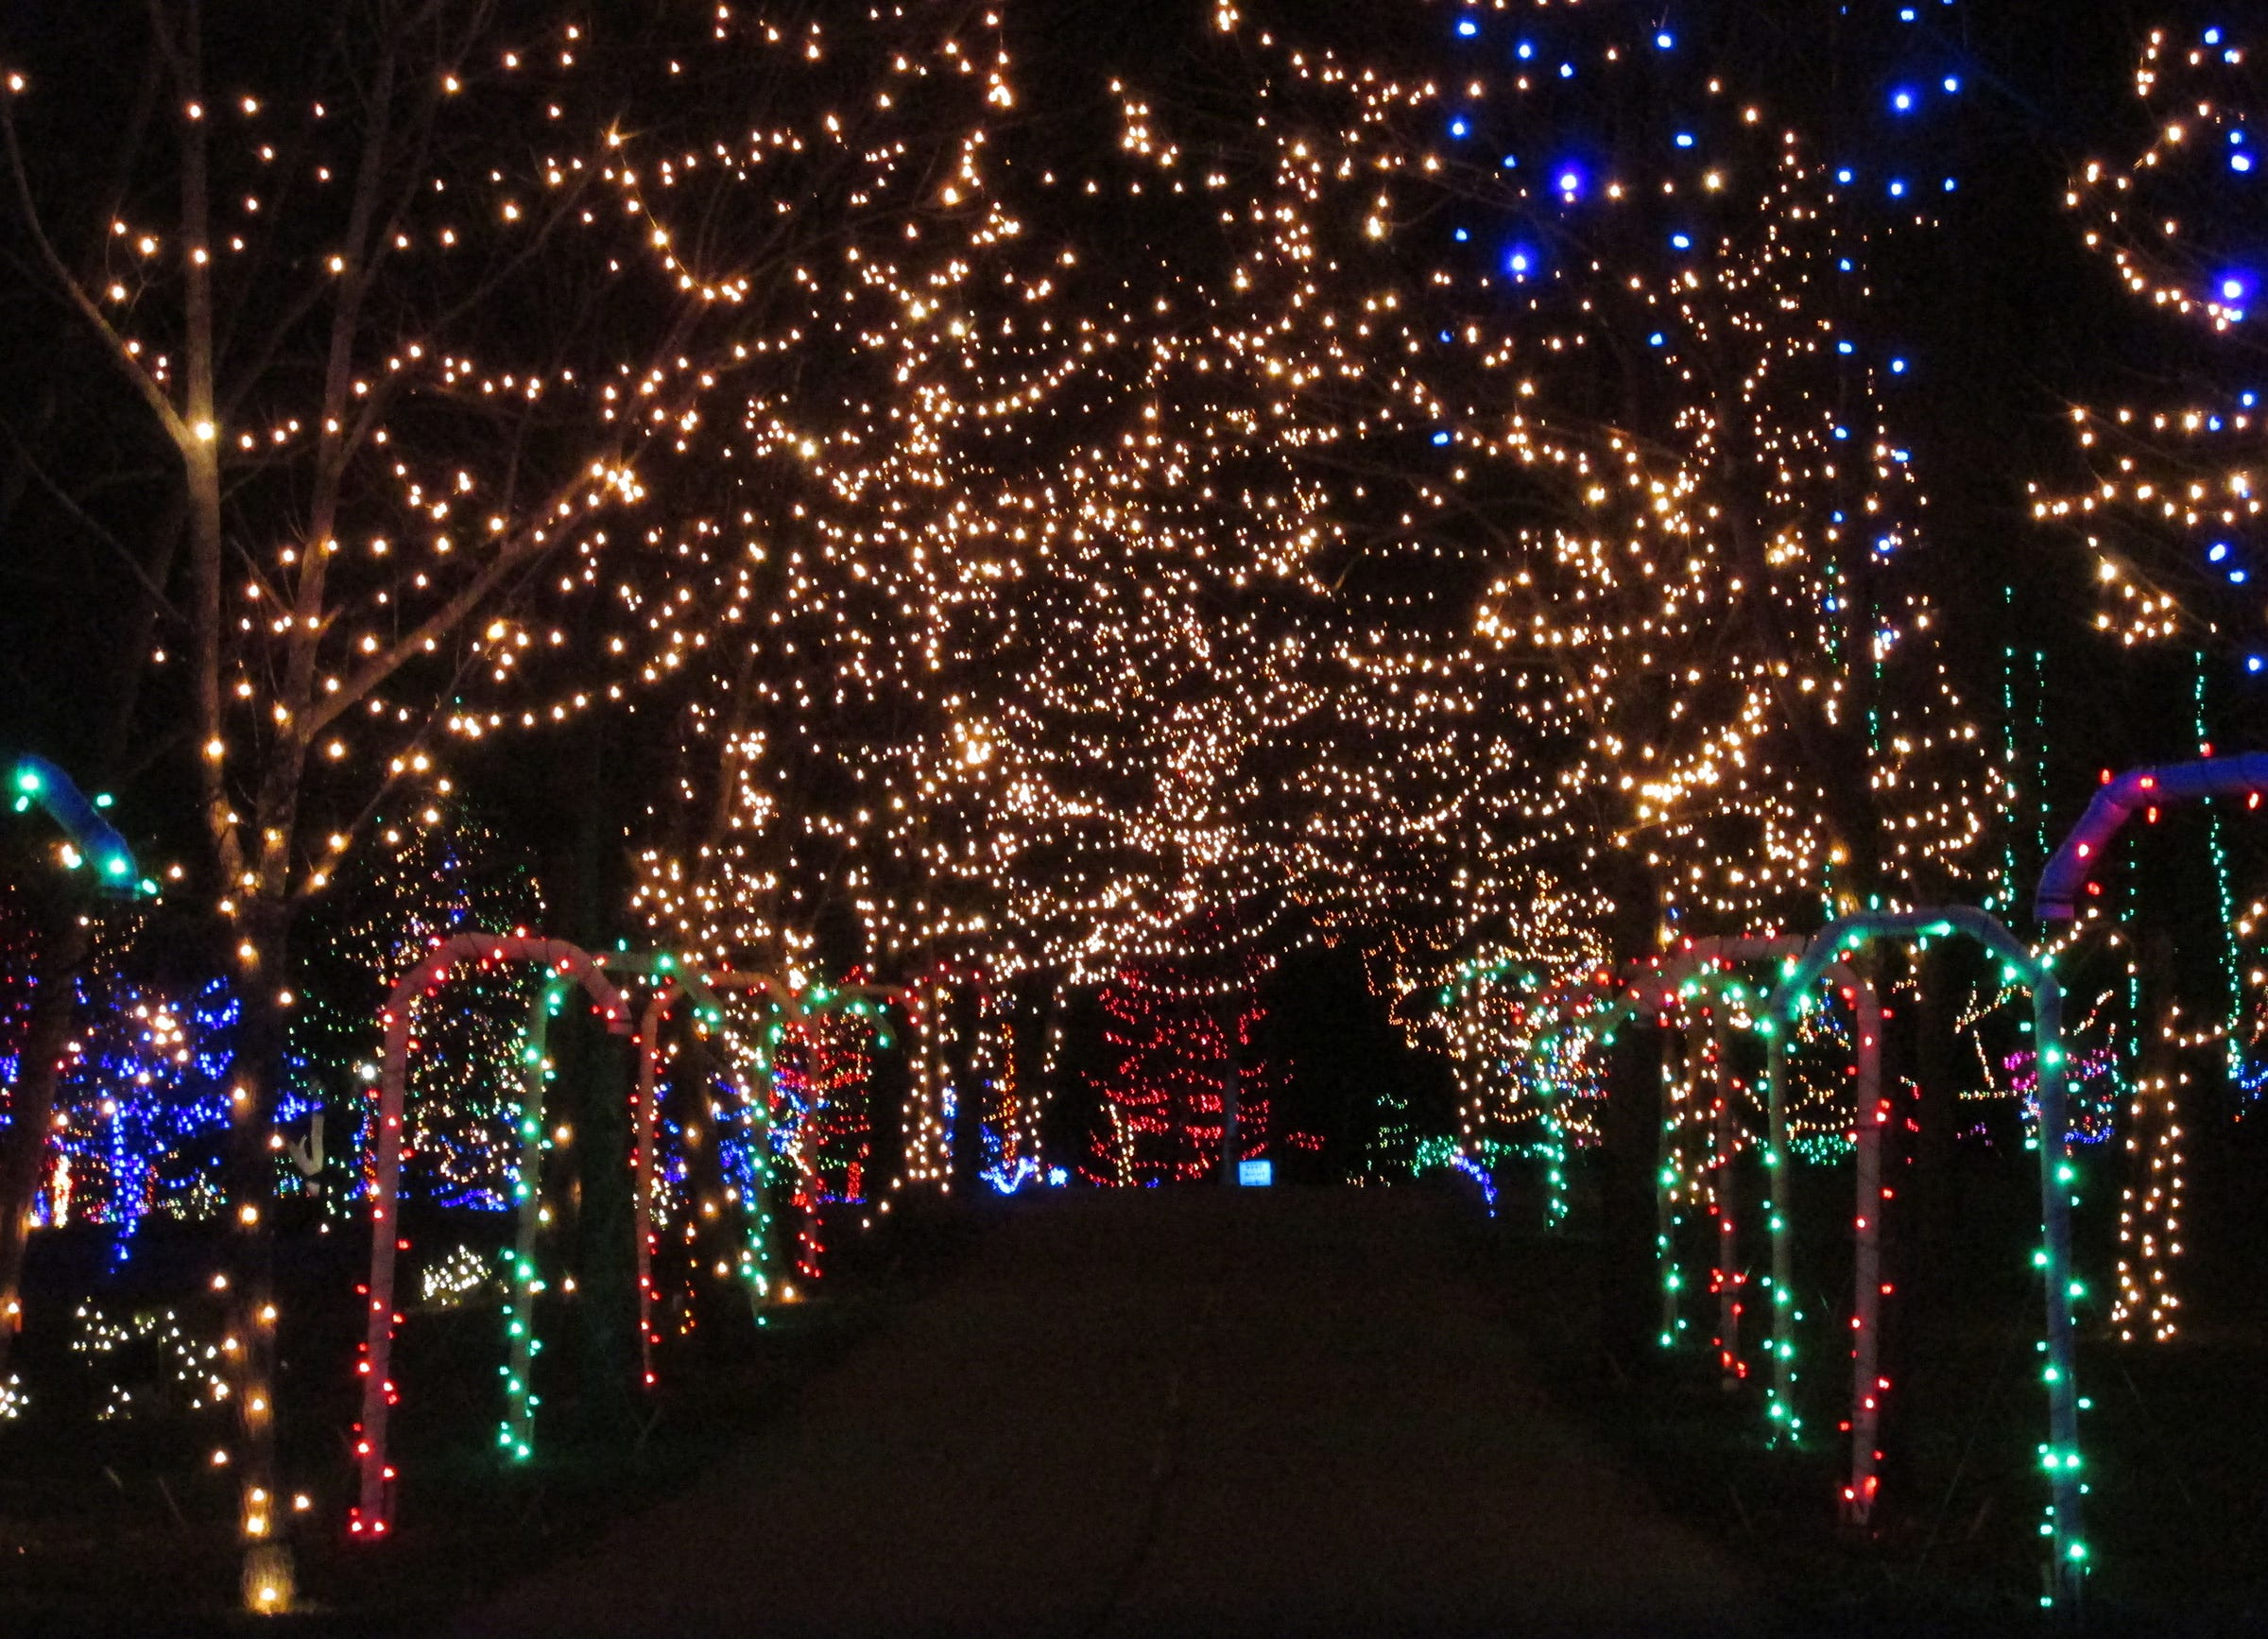 Morris Park Christmas Lights 2021 Hours Of Operation Christmas Lights Trains And Santa Holiday Events In Cincinnati 2020